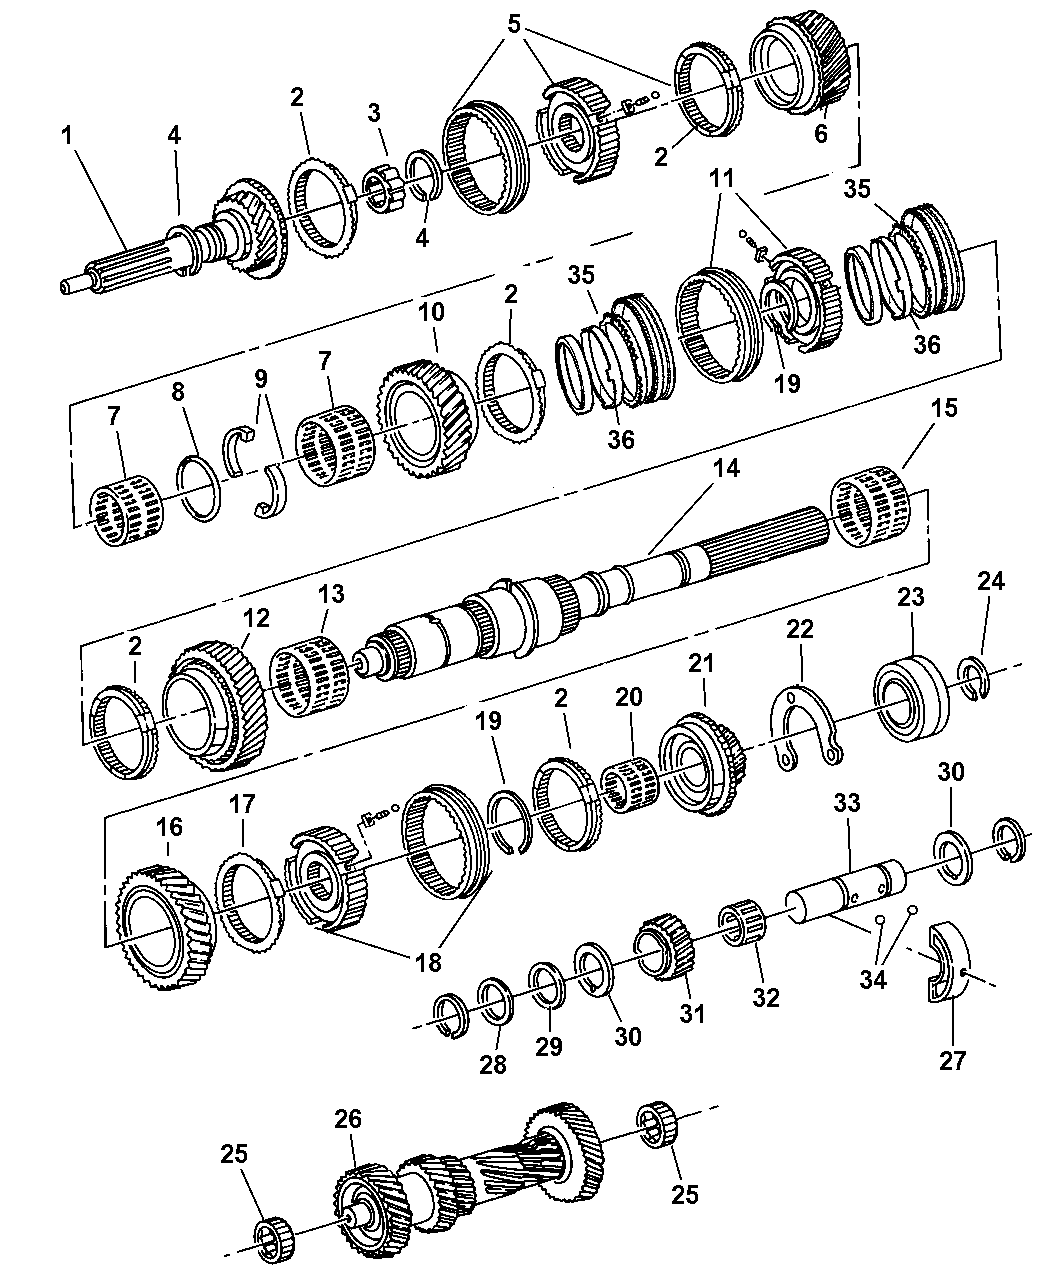 2001 jeep cherokee gear train of manual transmission